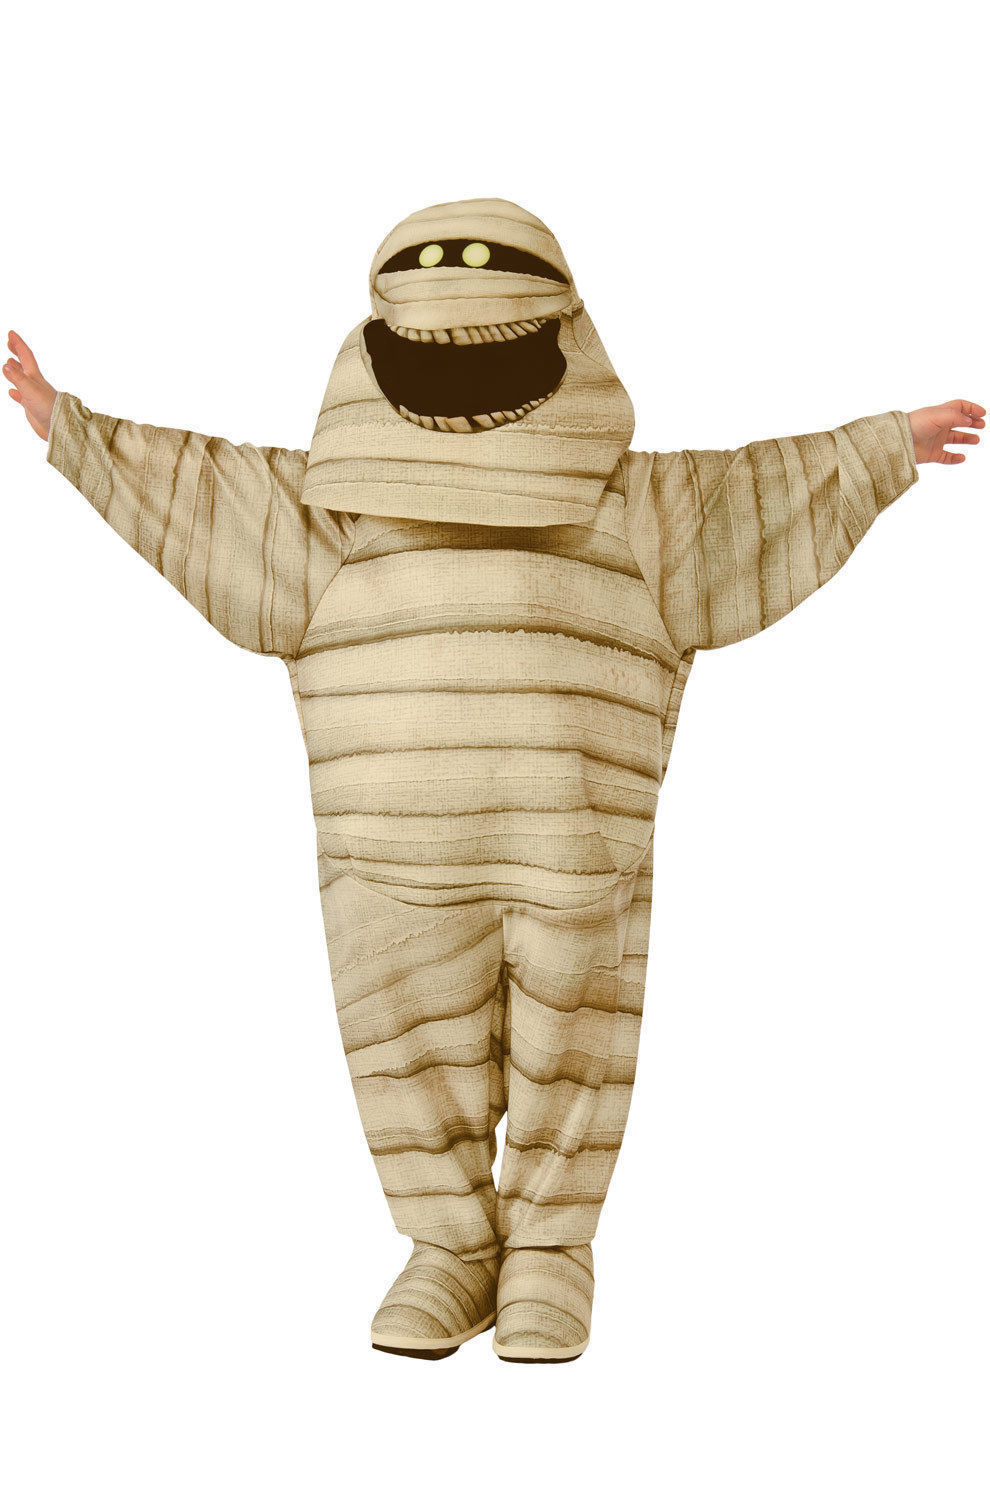 Hotel Transylvania Murray The Mummy Child Halloween Costume Free Shipping